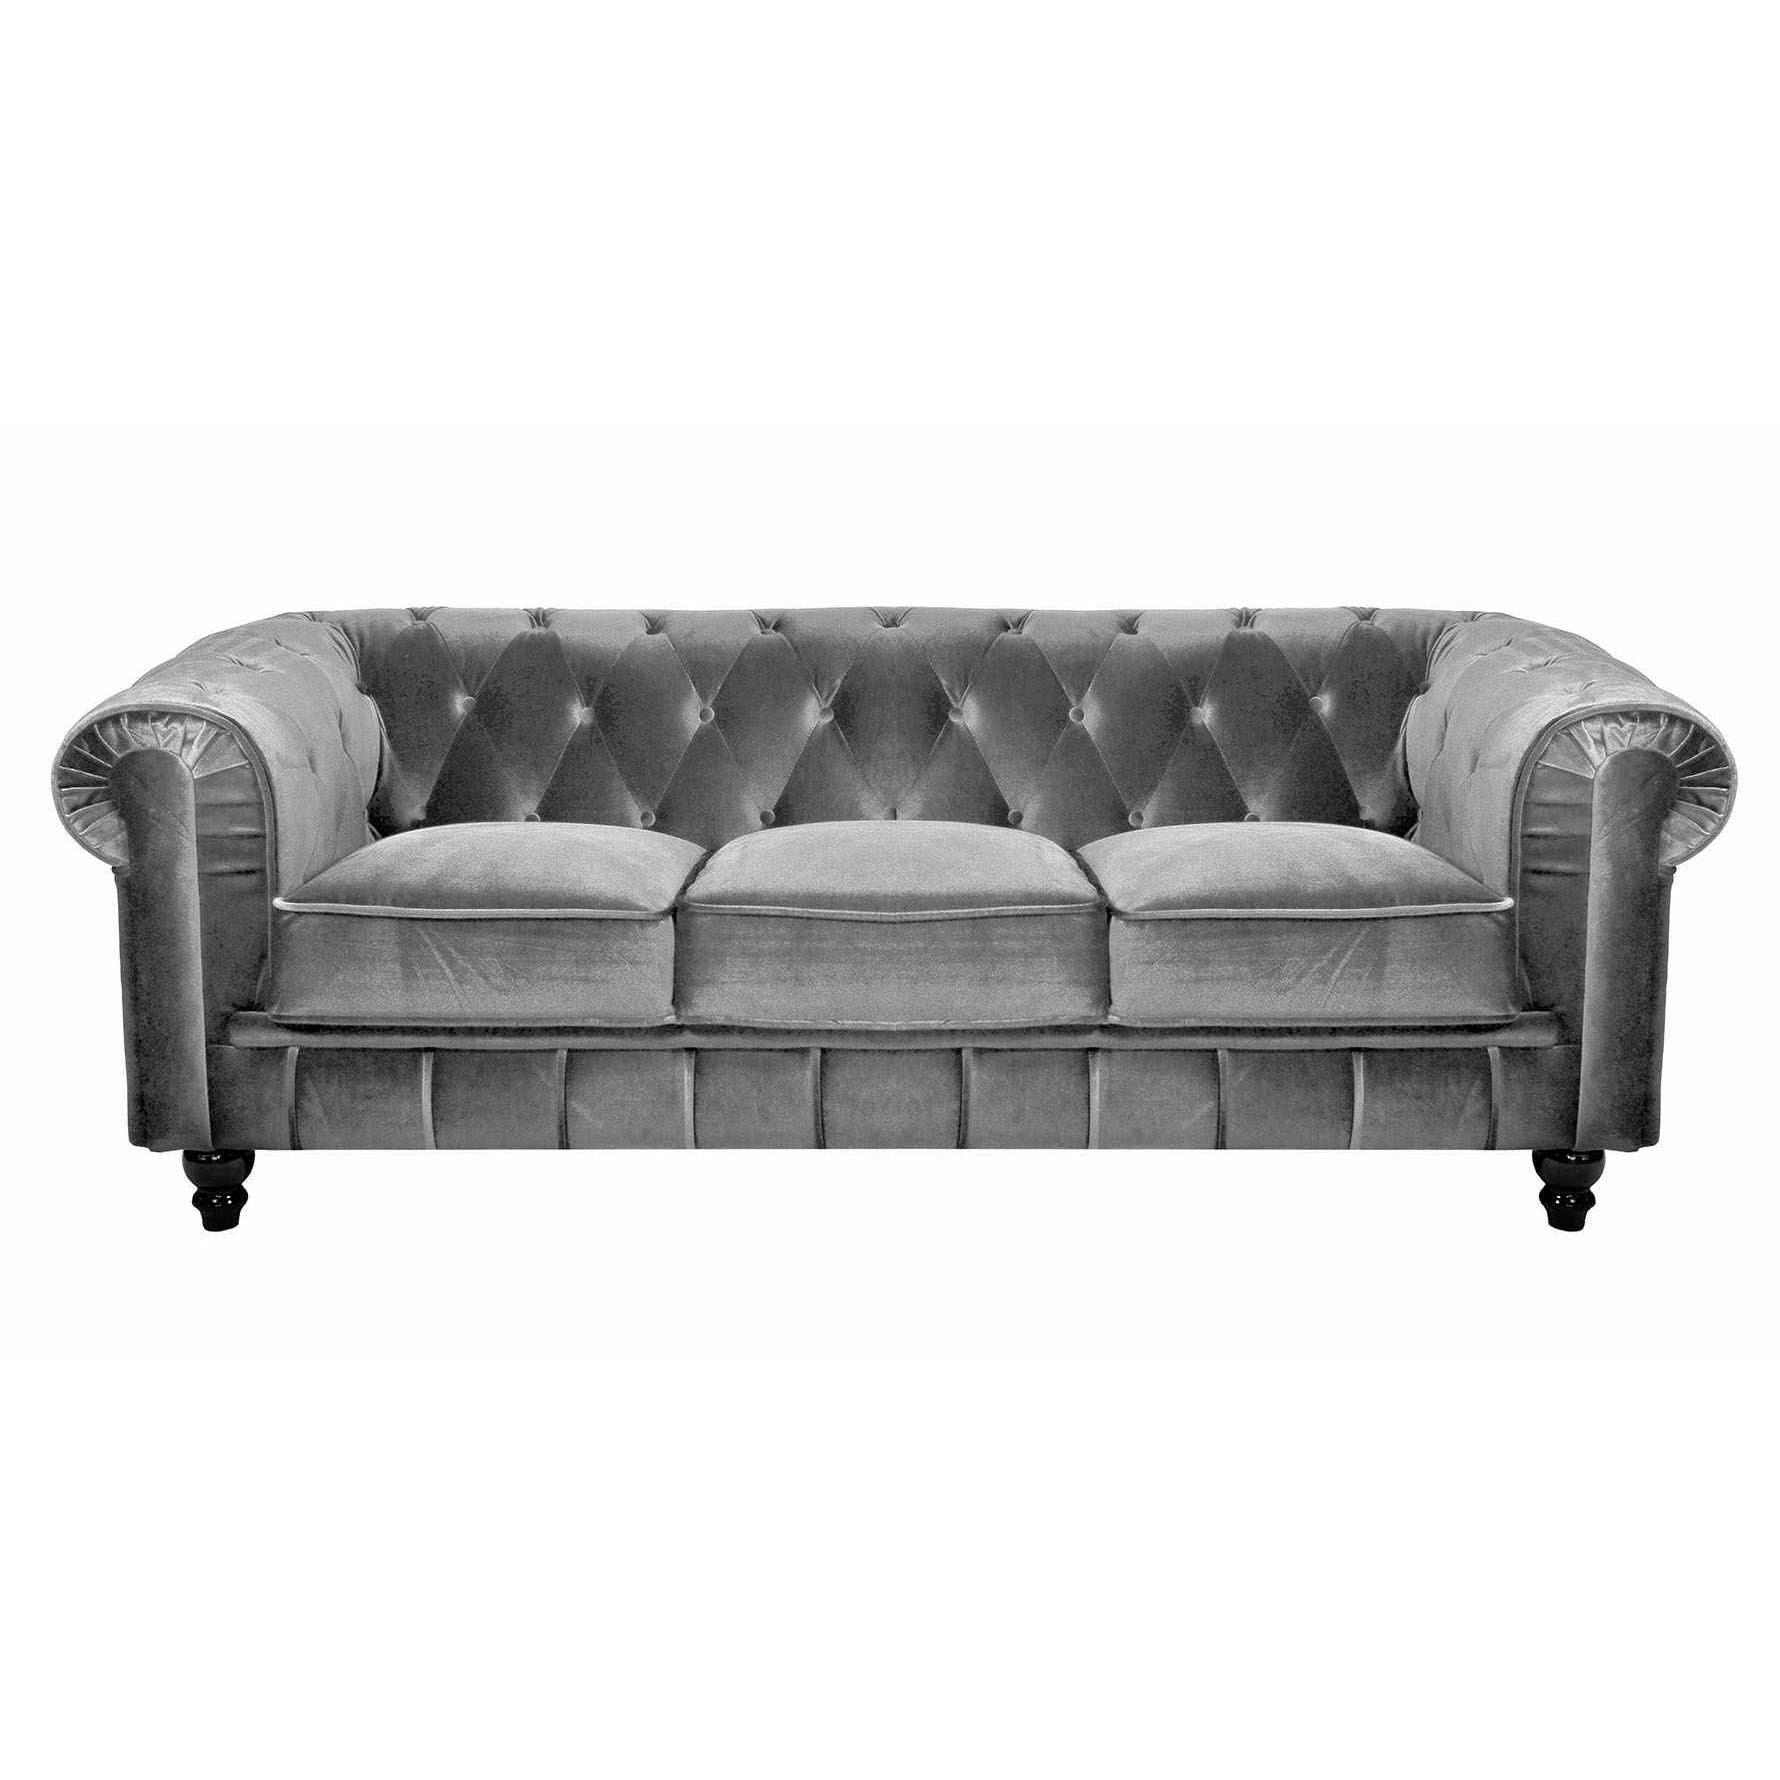 Deco in paris canape 3 places velours gris chesterfield can chester 3p velo - Canape rouge velours ...